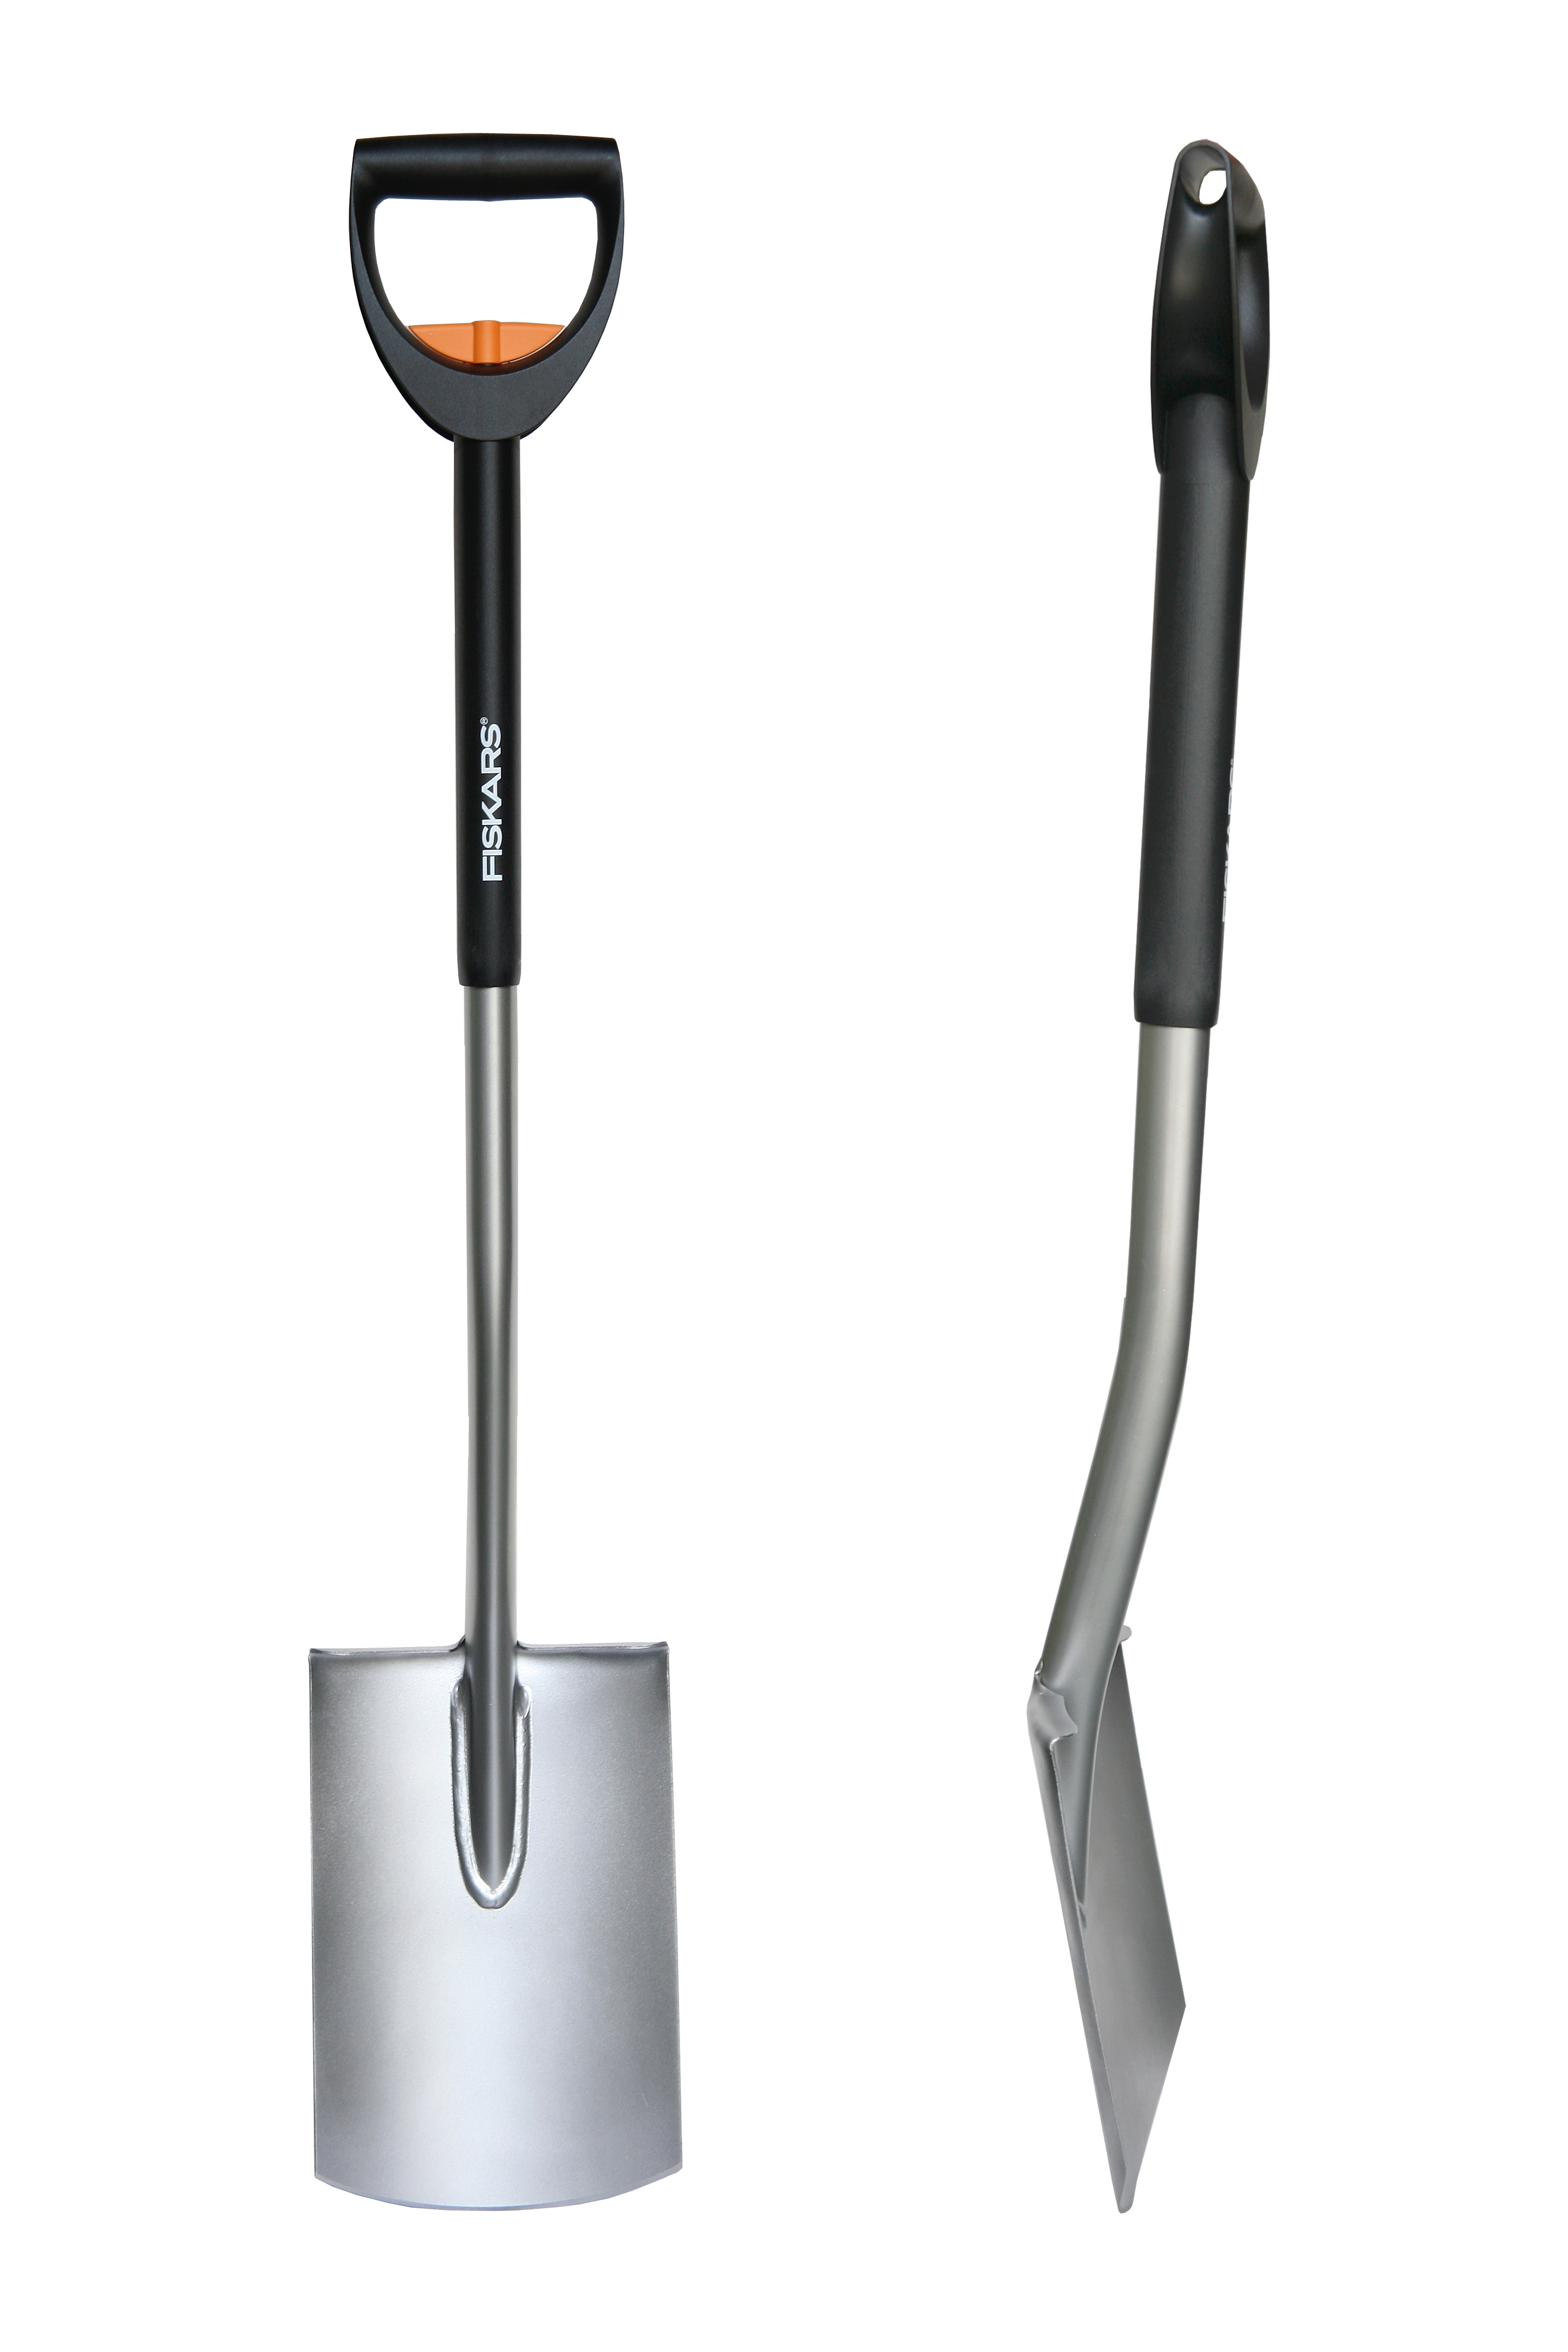 Getting a handle on gardening tools